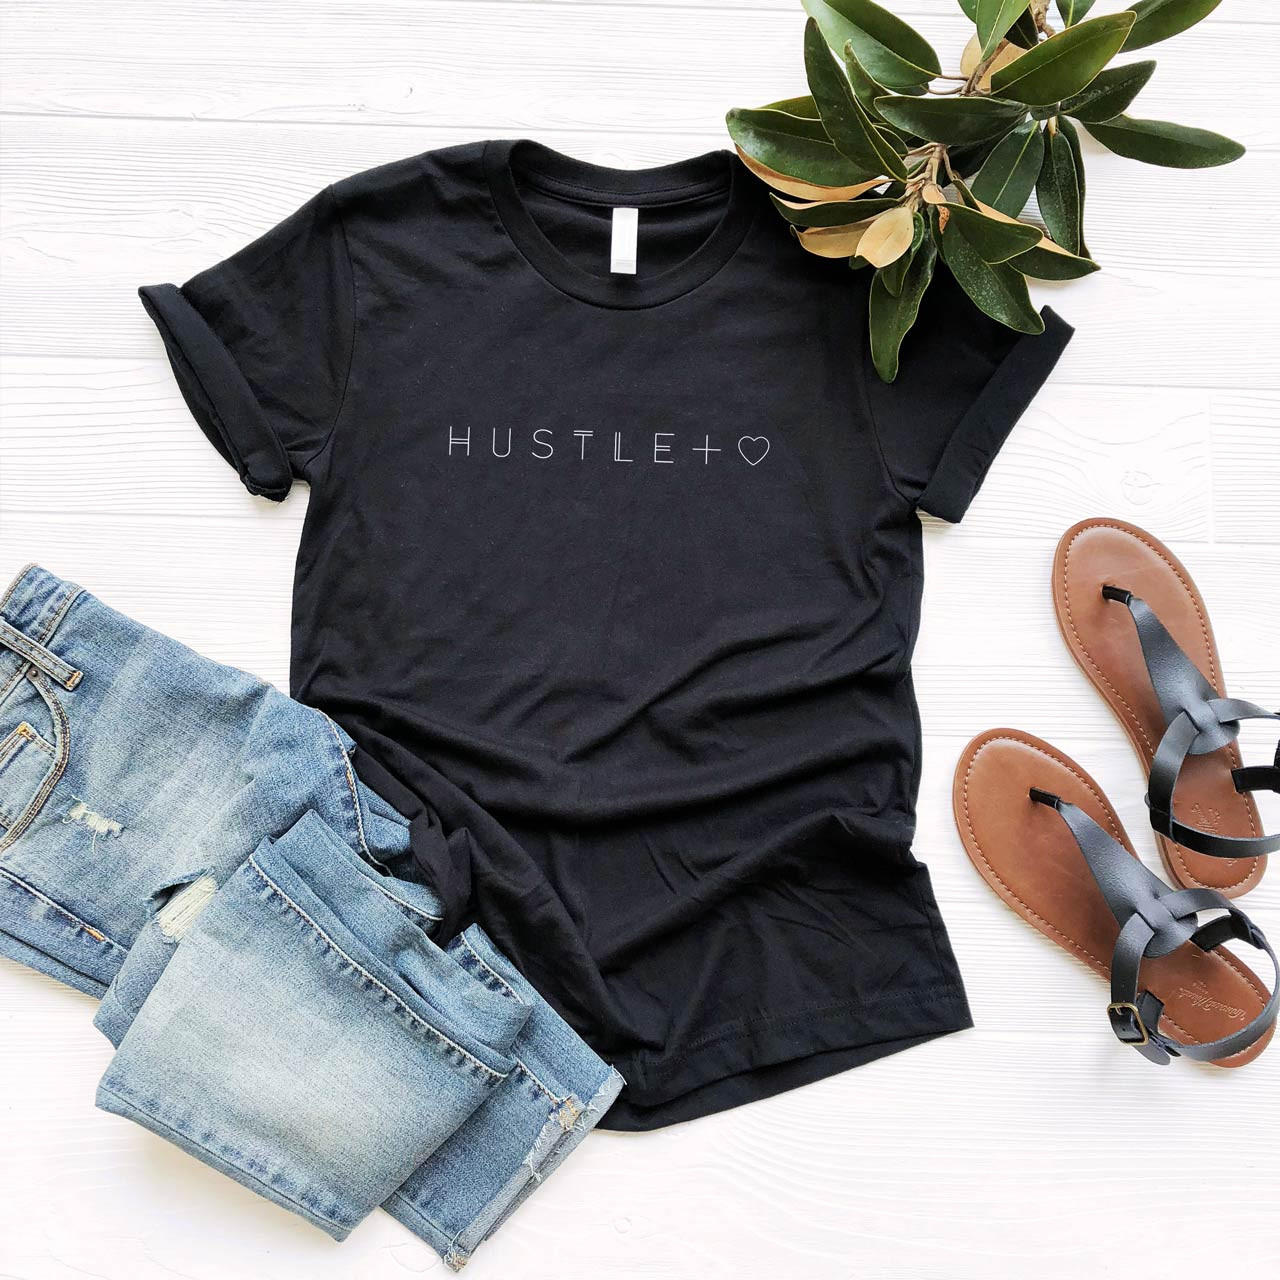 HUSTLE + HEART Cotton T-Shirt (White on Black) from The Printed Home